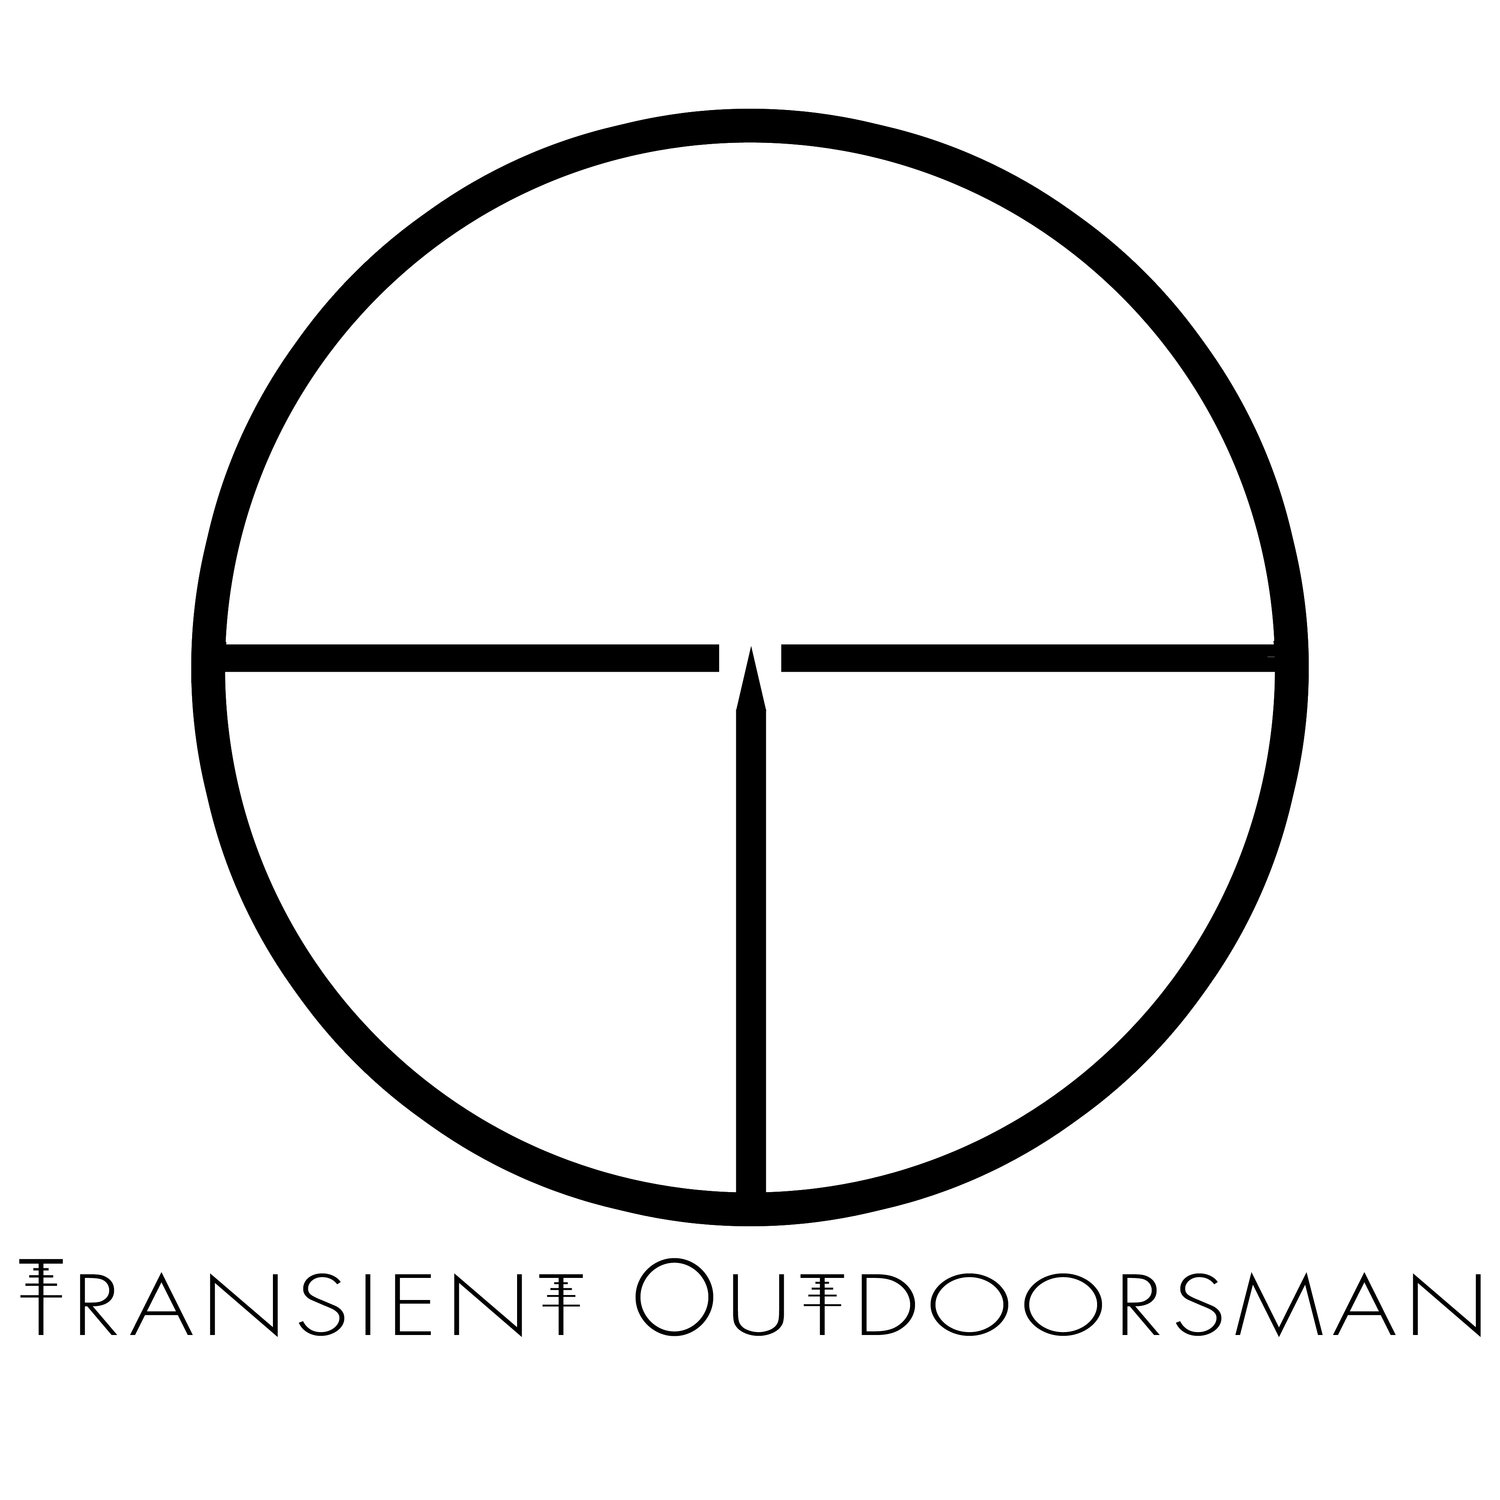 Transient Outdoorsman